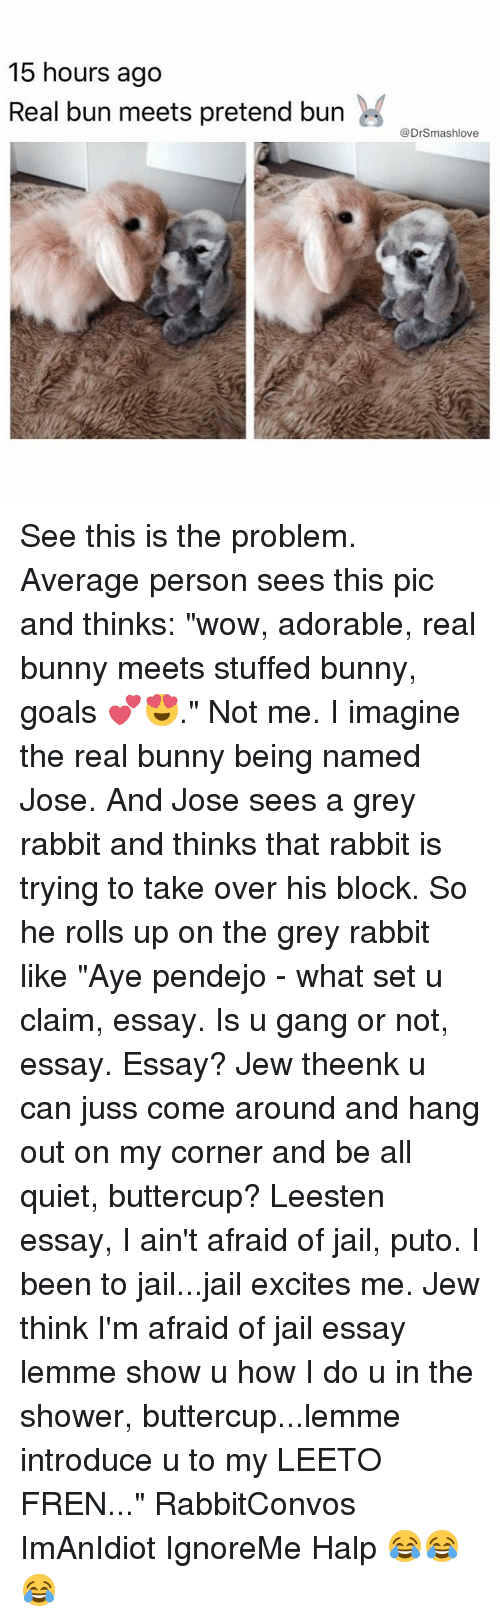 """Averagers: 15 hours ago  Real bun meets pretend burn  @DrSmashlove See this is the problem. Average person sees this pic and thinks: """"wow, adorable, real bunny meets stuffed bunny, goals 💕😍."""" Not me. I imagine the real bunny being named Jose. And Jose sees a grey rabbit and thinks that rabbit is trying to take over his block. So he rolls up on the grey rabbit like """"Aye pendejo - what set u claim, essay. Is u gang or not, essay. Essay? Jew theenk u can juss come around and hang out on my corner and be all quiet, buttercup? Leesten essay, I ain't afraid of jail, puto. I been to jail...jail excites me. Jew think I'm afraid of jail essay lemme show u how I do u in the shower, buttercup...lemme introduce u to my LEETO FREN..."""" RabbitConvos ImAnIdiot IgnoreMe Halp 😂😂😂"""